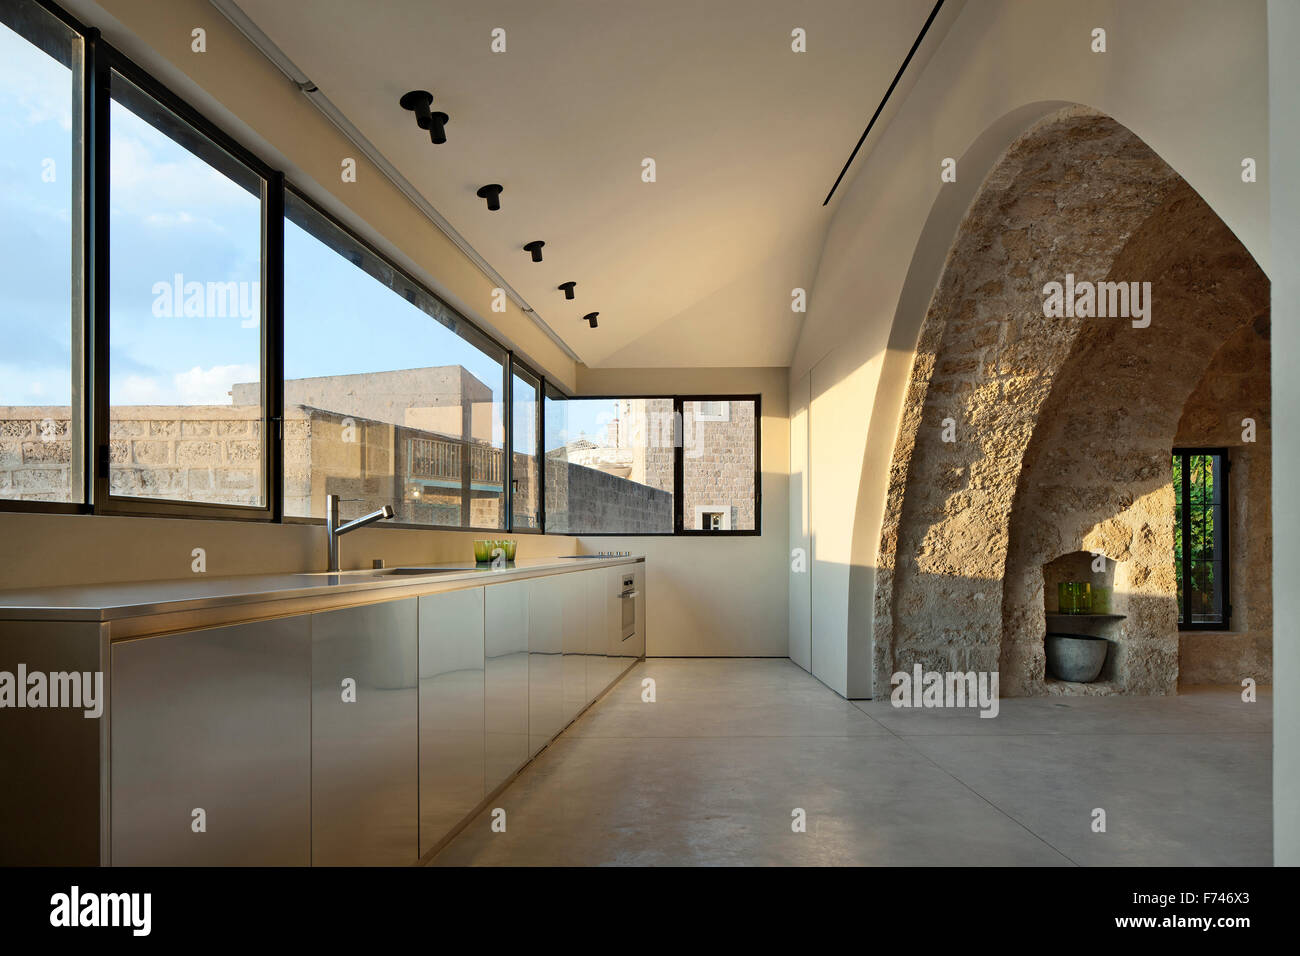 Exposed Stone Arch And Minimalist Kitchen With Uncurtained Windows